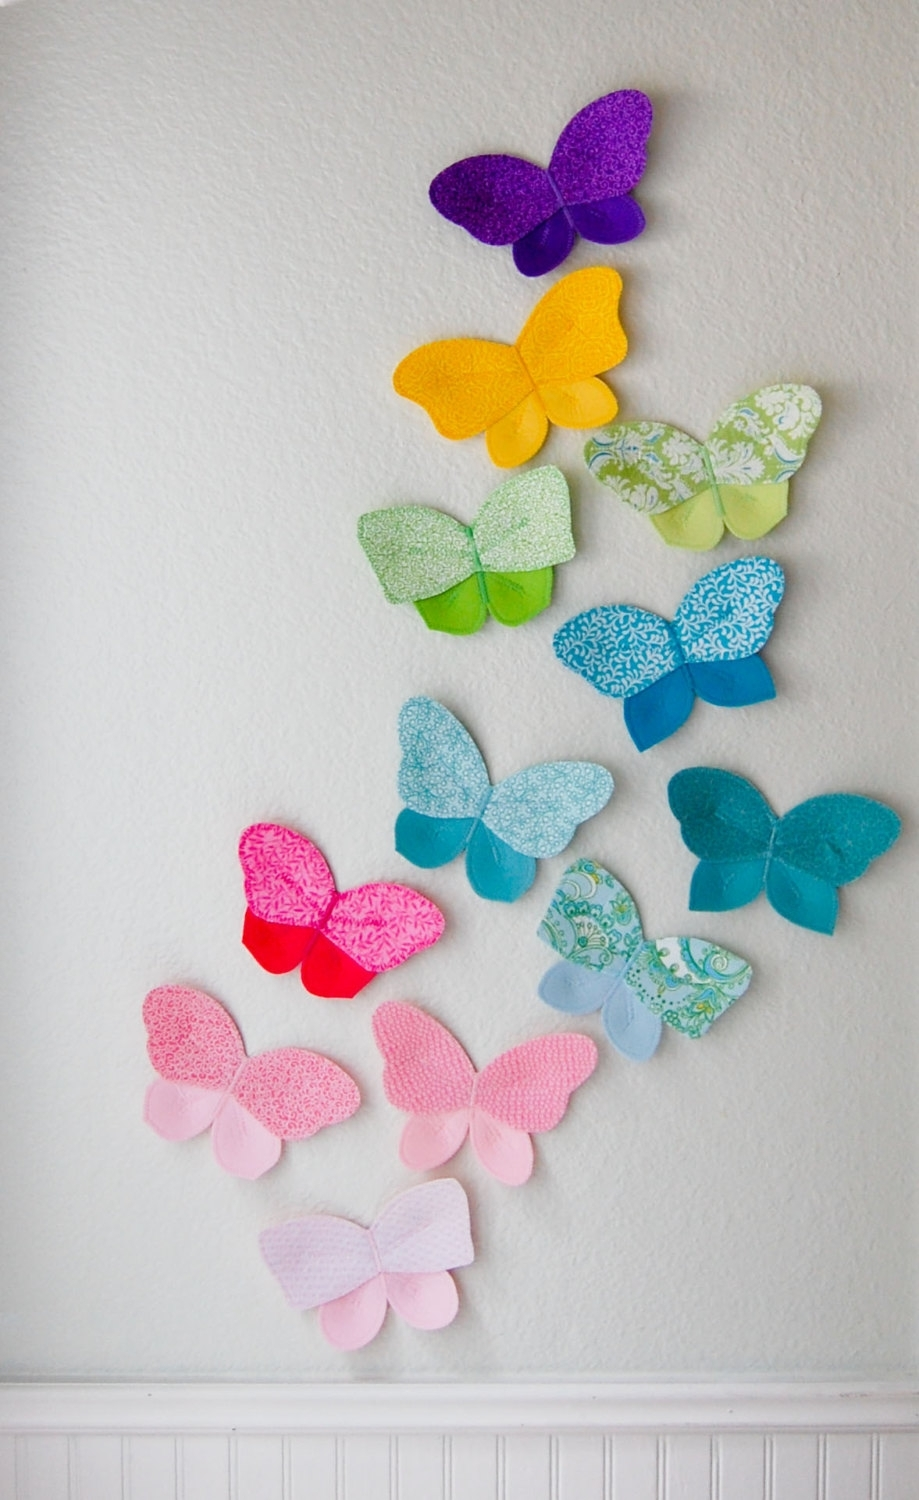 3d Fabric Butterfly, Wall Decor For Girls Room, Nursery Decor Throughout Most Recent Fabric Butterfly Wall Art (Gallery 10 of 15)